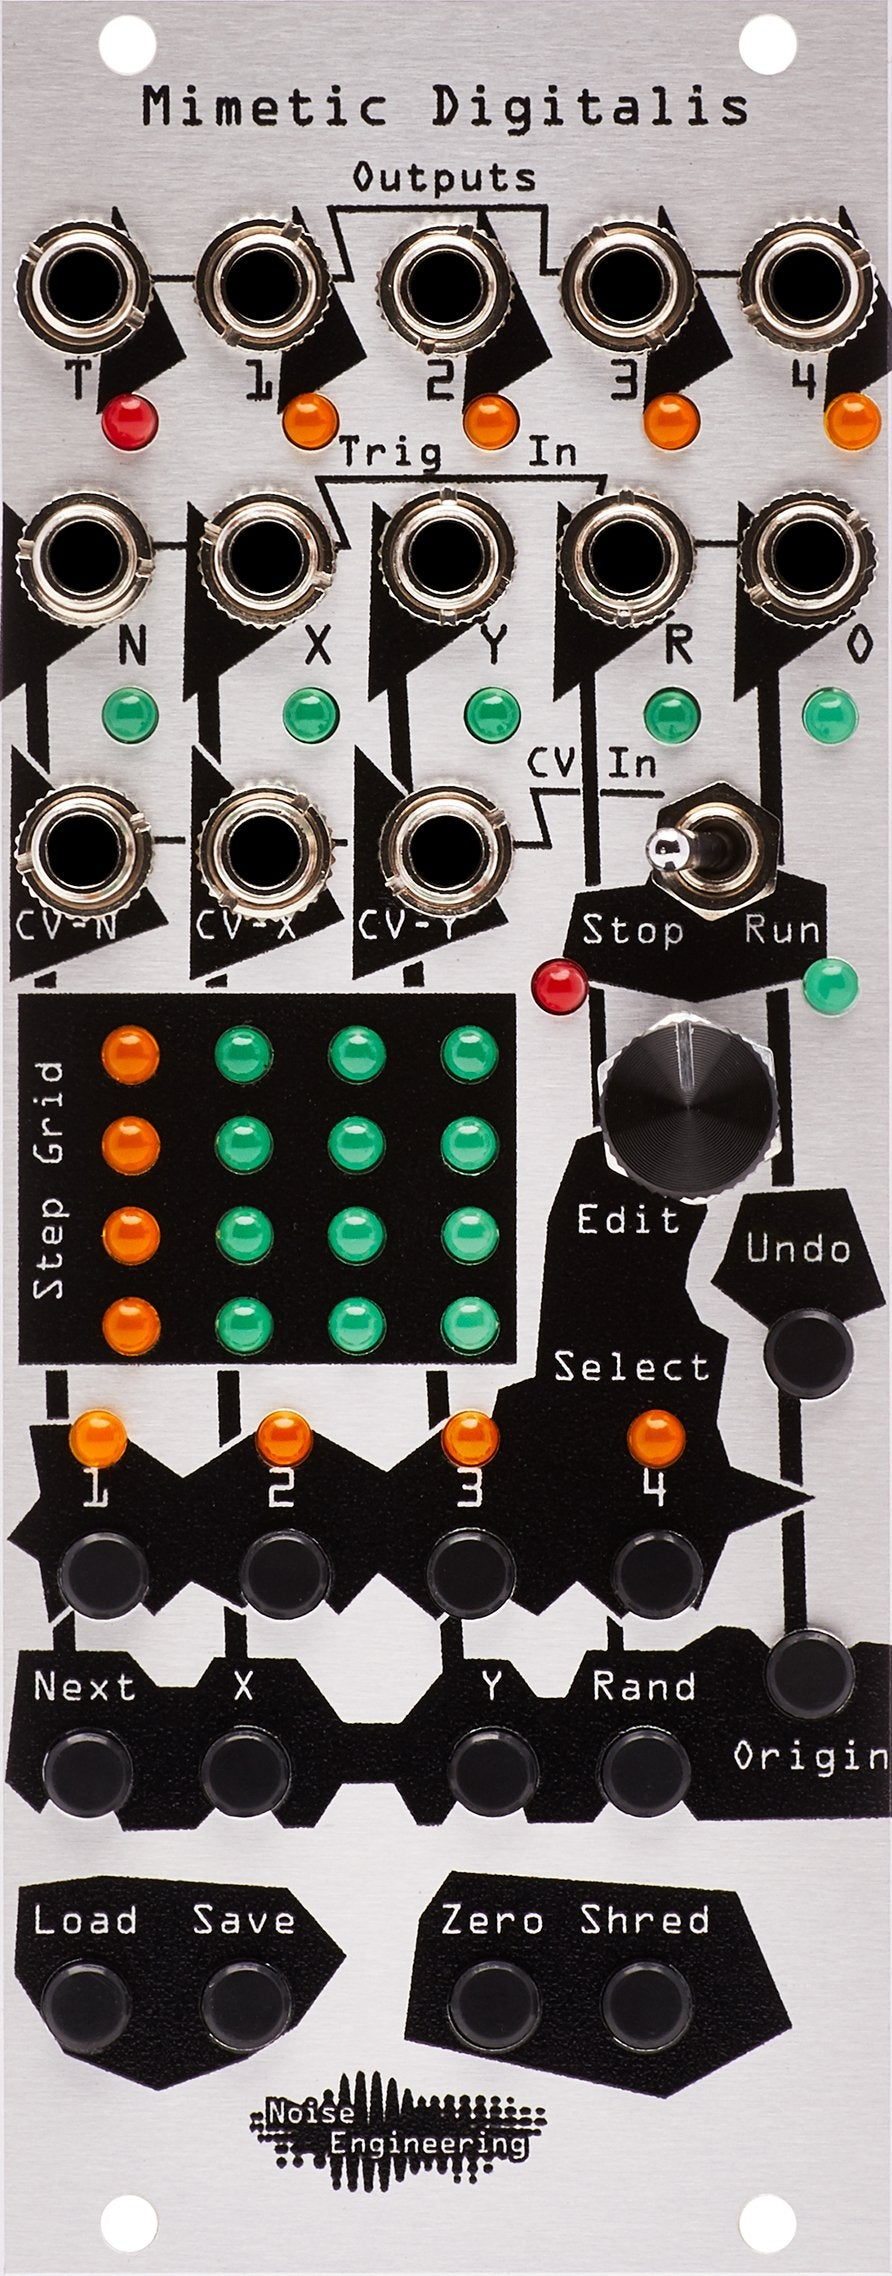 The Mimetic Digitalis module front panel, in silver with black graphics and knobs and LEDs.